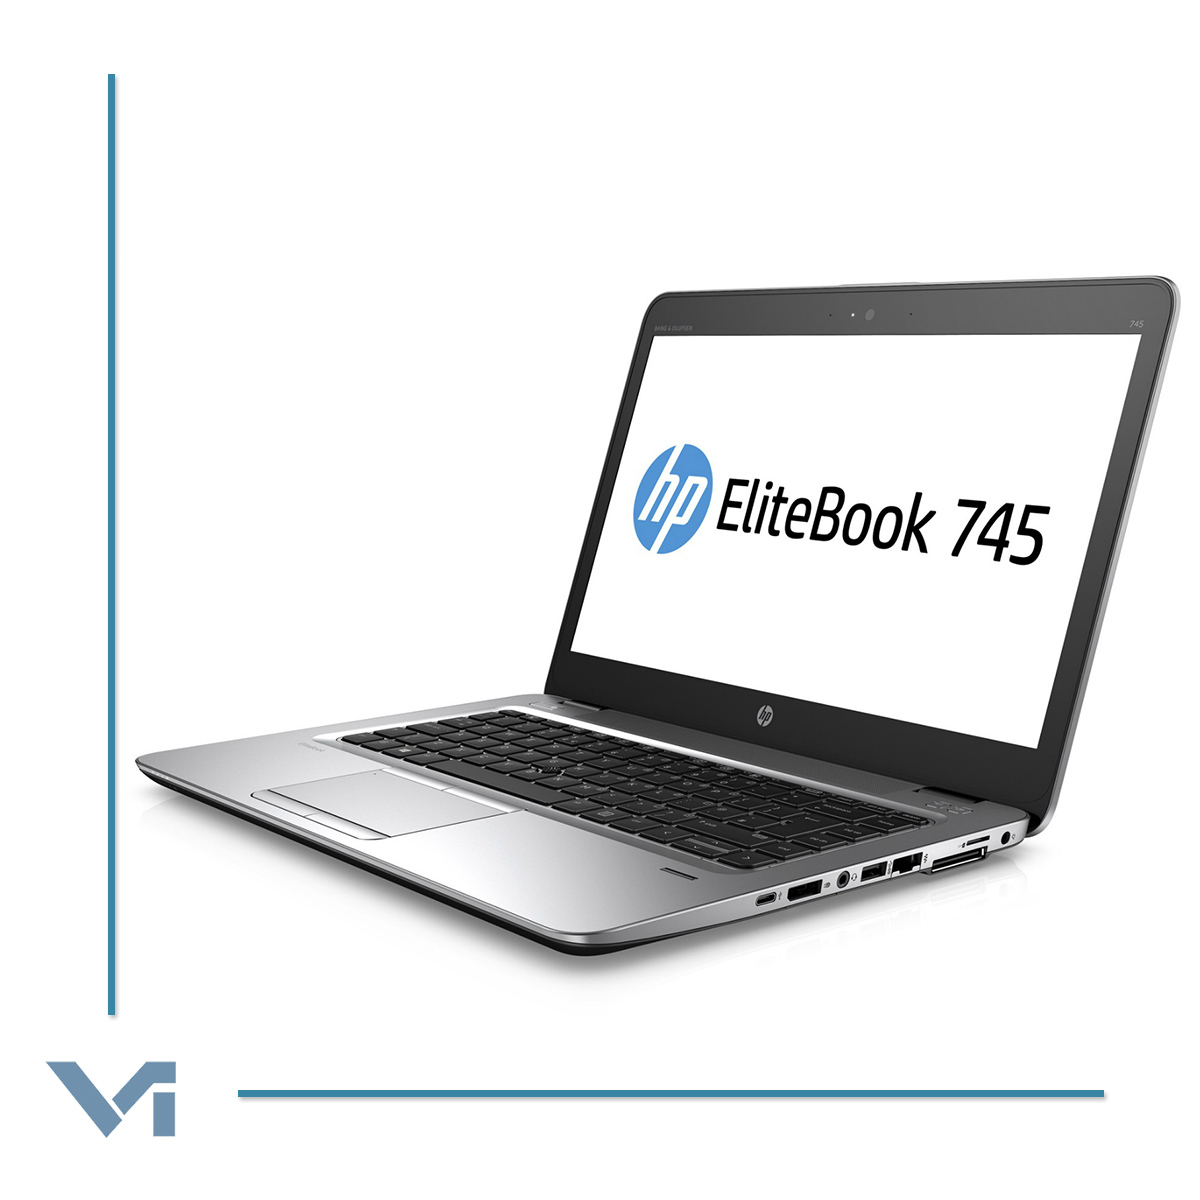 "Notebook HP ELITEBOOK 745 G3 L9Z81AV - AMD PRO A10-8700B R6 8GB DDR4 120GB SSD 14.0"" Win 10 Professional -NOCOLOR- Ricondizionato"